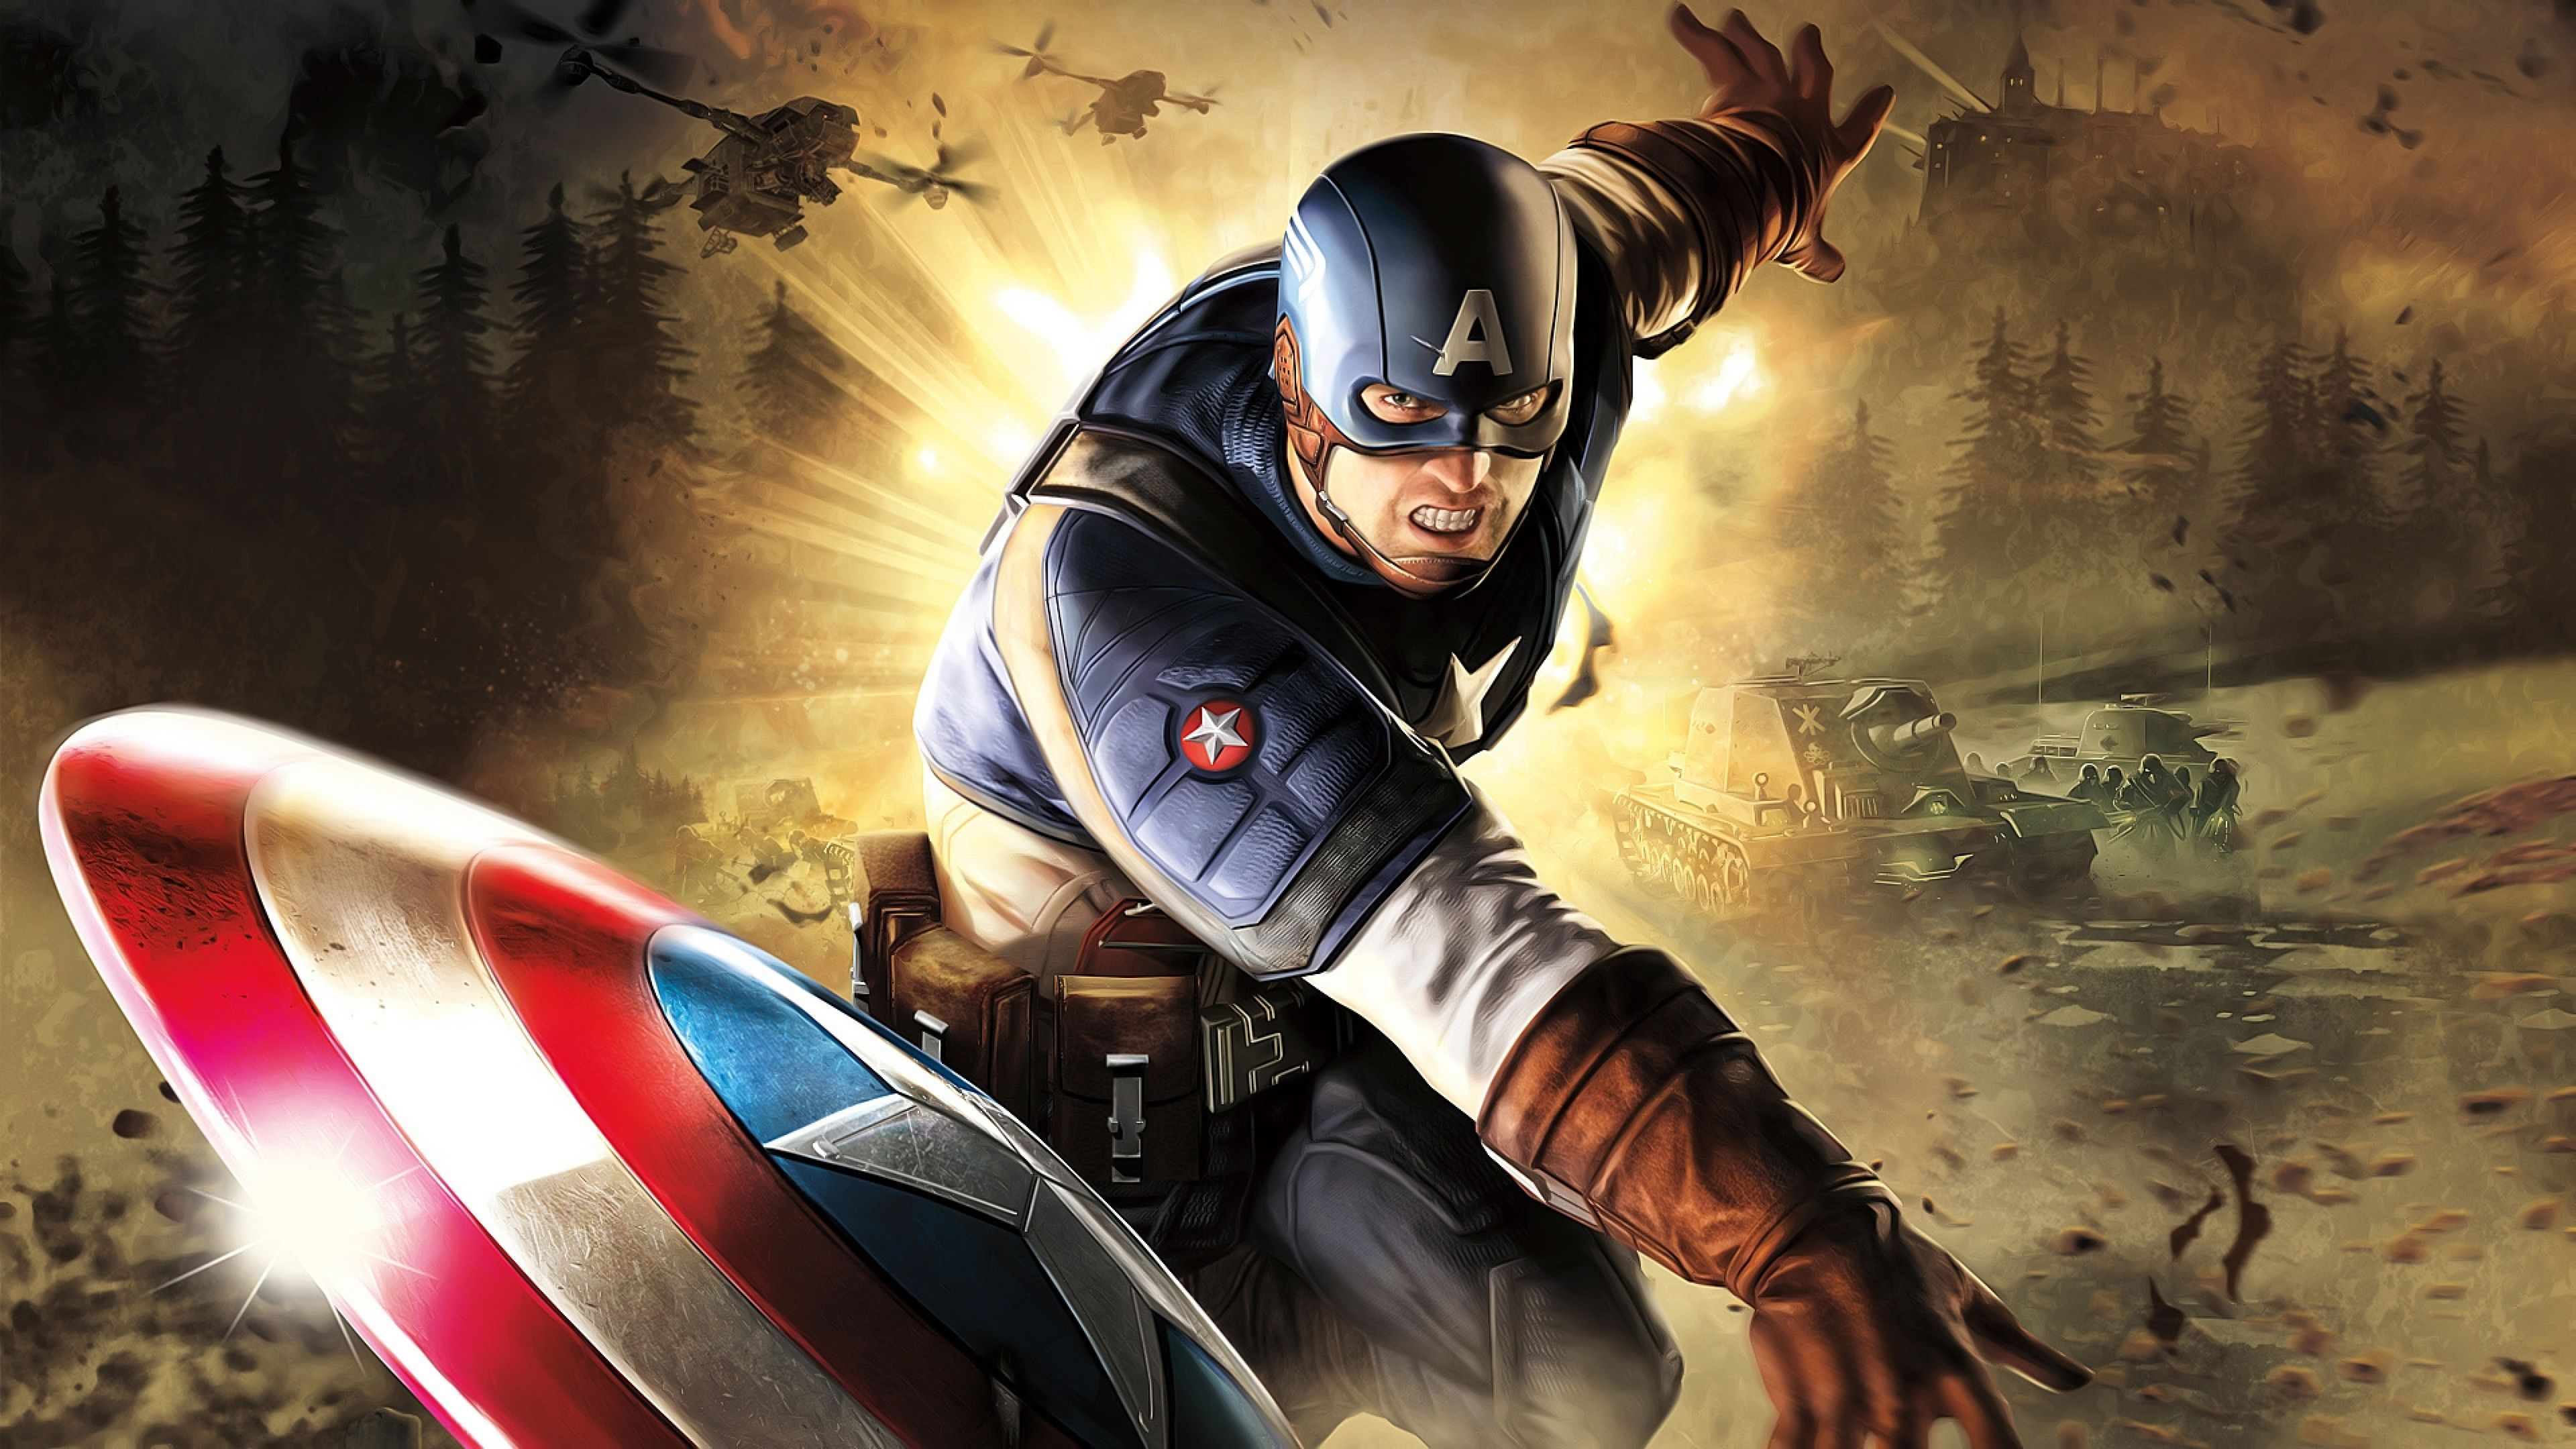 Captain America 5k Artwork Superheroes Wallpapers Hd Wallpapers Digital Art Wallpaper Captain America Wallpaper Captain America Super Soldier Captain America